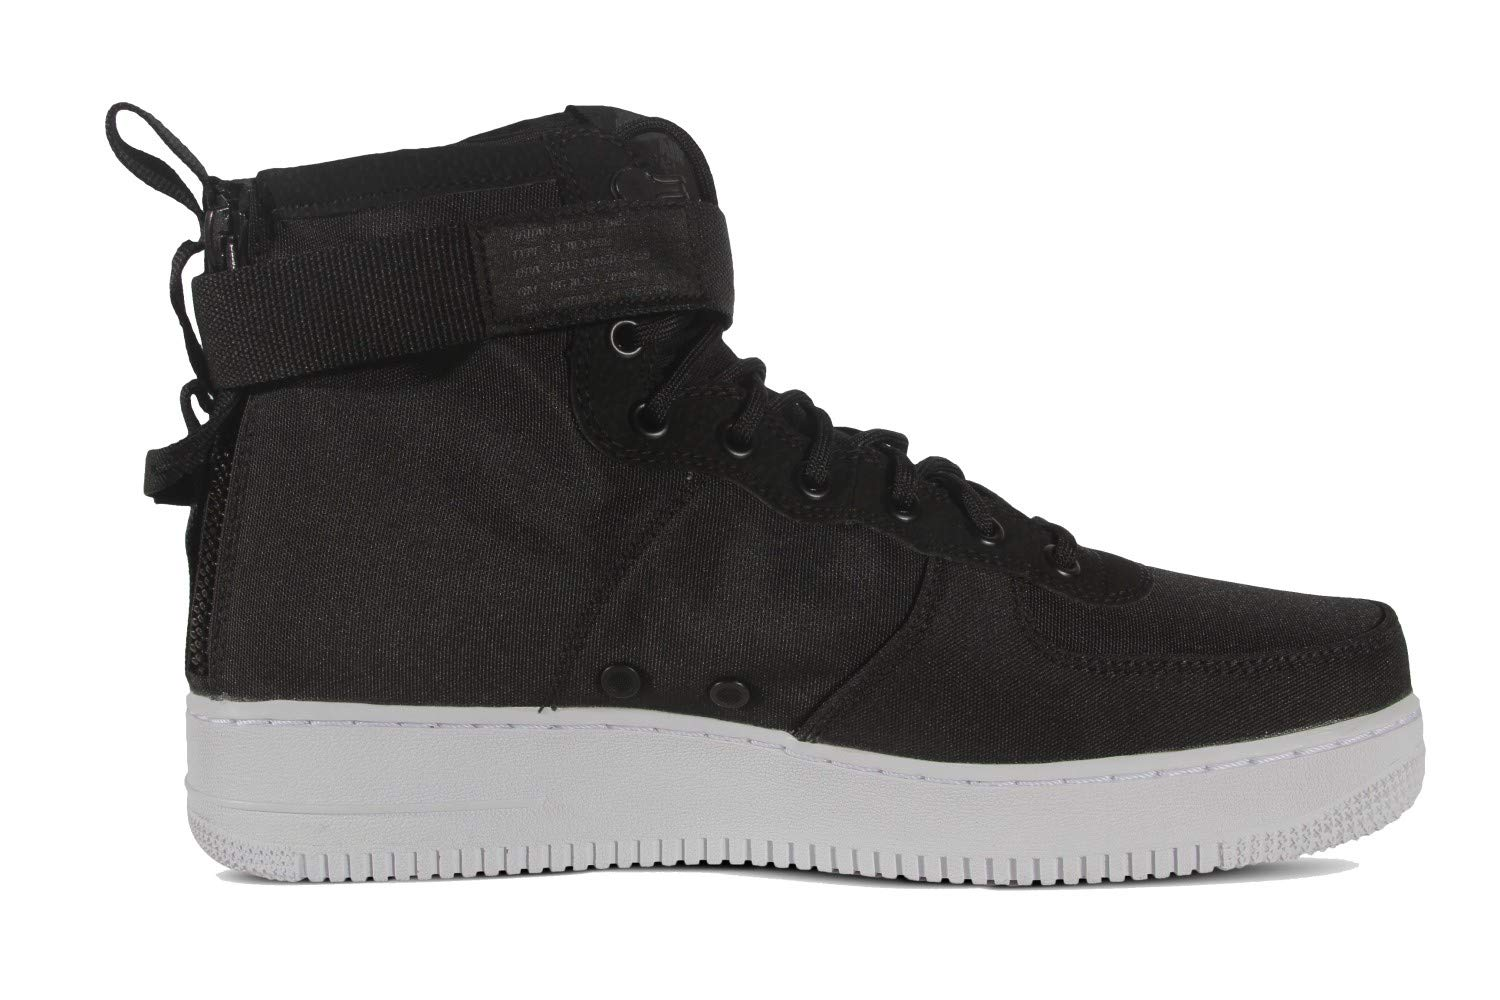 info for c6286 1d3e6 Galleon - Nike SF Air Force 1 Mid Mens Basketball Shoes (9.5 D(M) US)